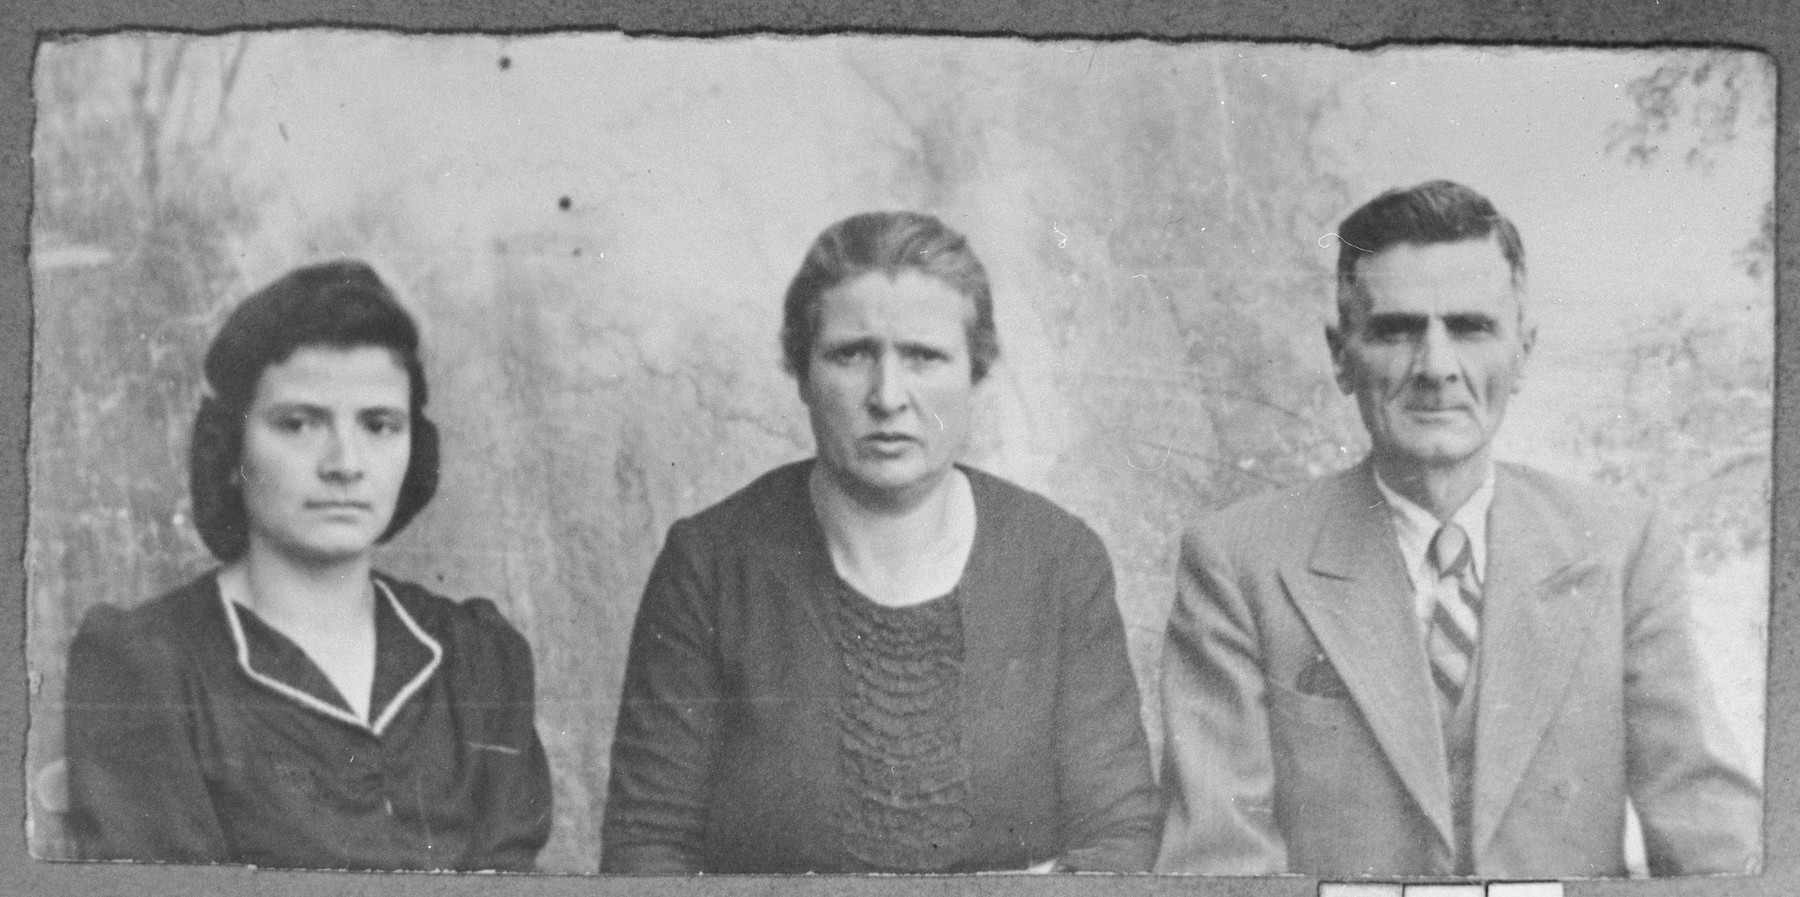 Portrait of Yakov Sarfati, his wife, Hana, and his daughter, Luisa.  Yakov was an agent, and Luisa, a milliner.  They lived at Dalmatinska 70 in Bitola.